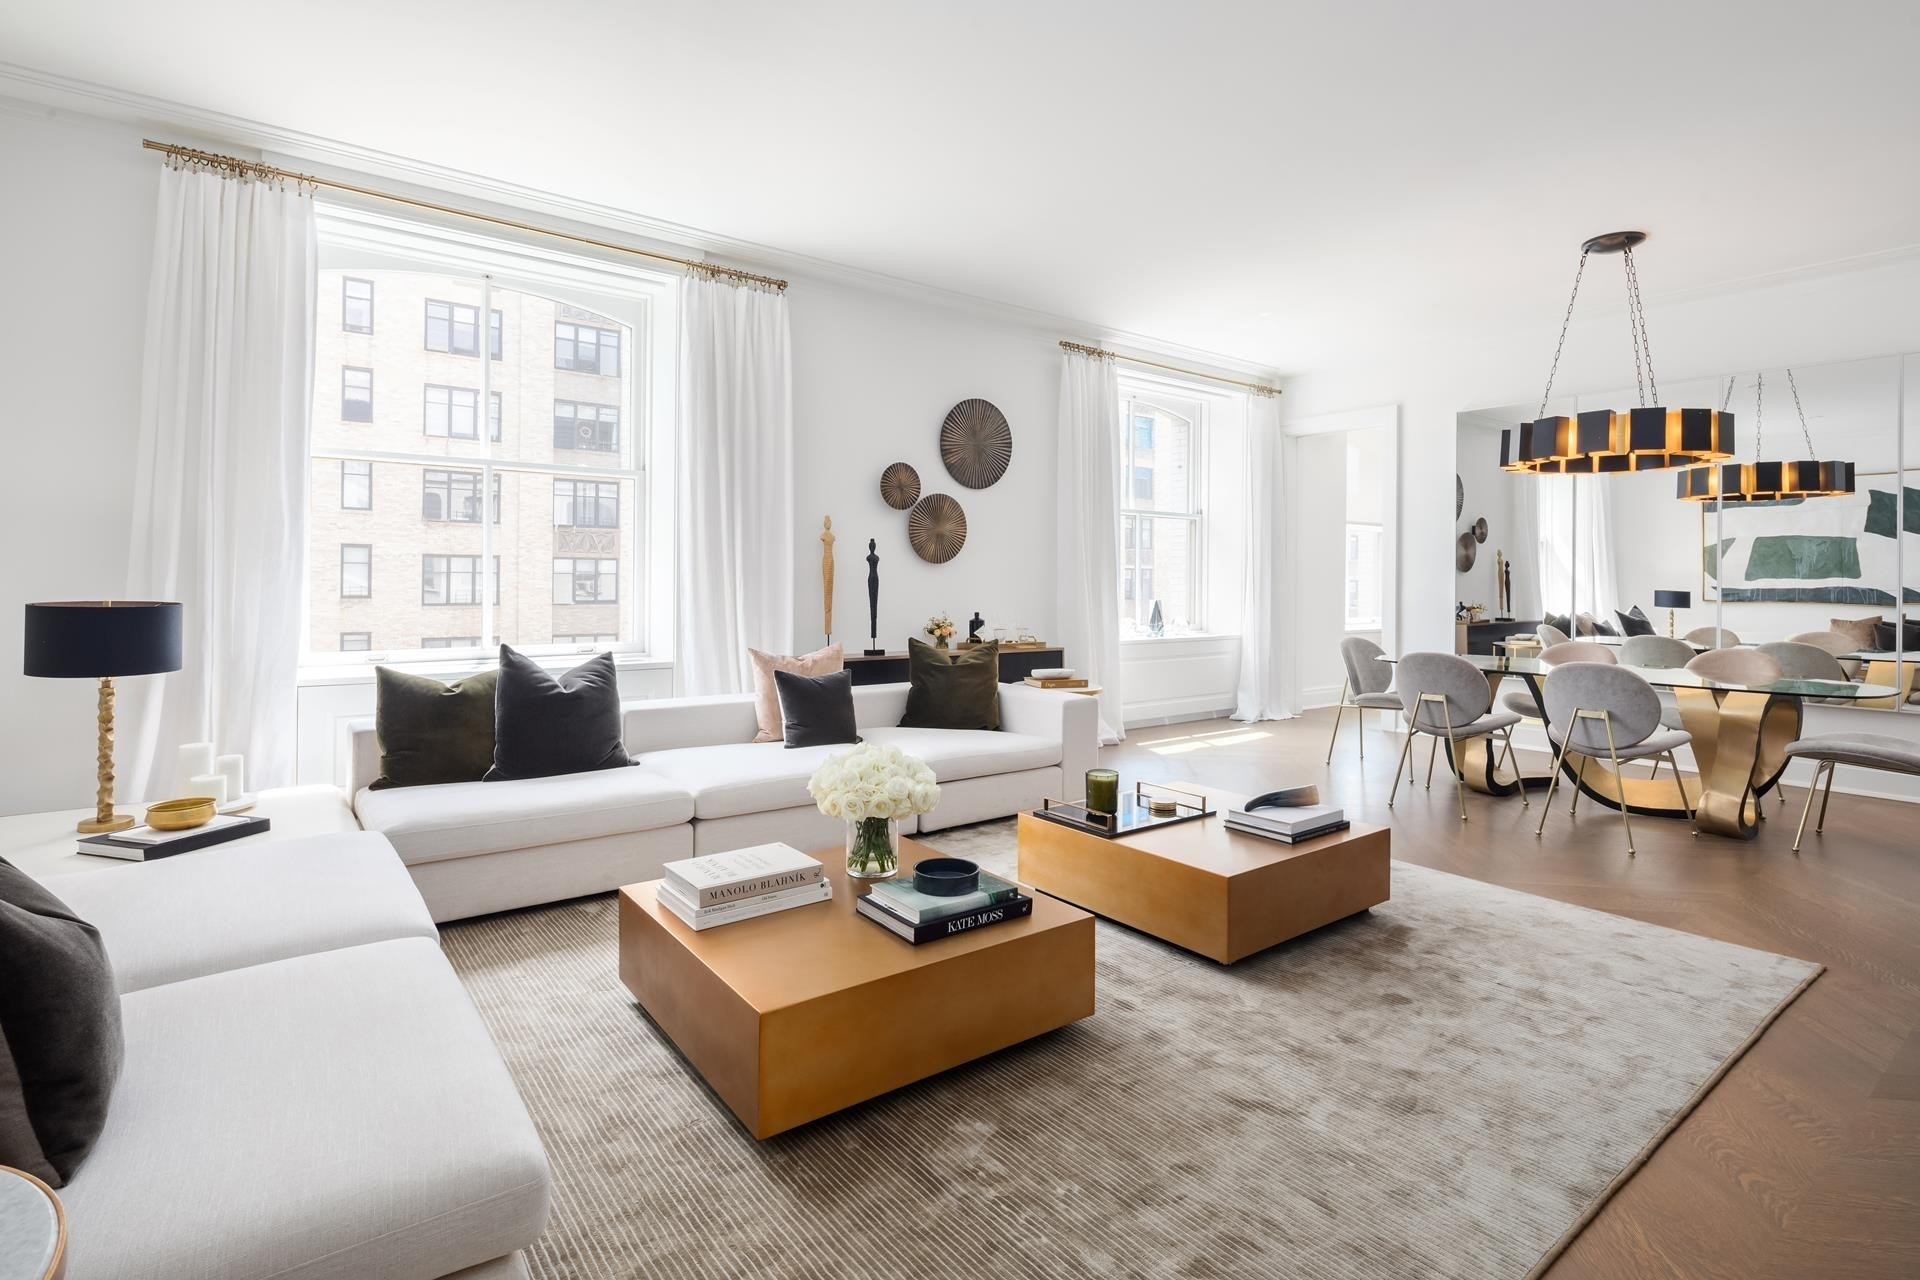 1. Condominiums for Sale at The Belnord, 225 West 86th St, 1103 Upper West Side, New York, NY 10024